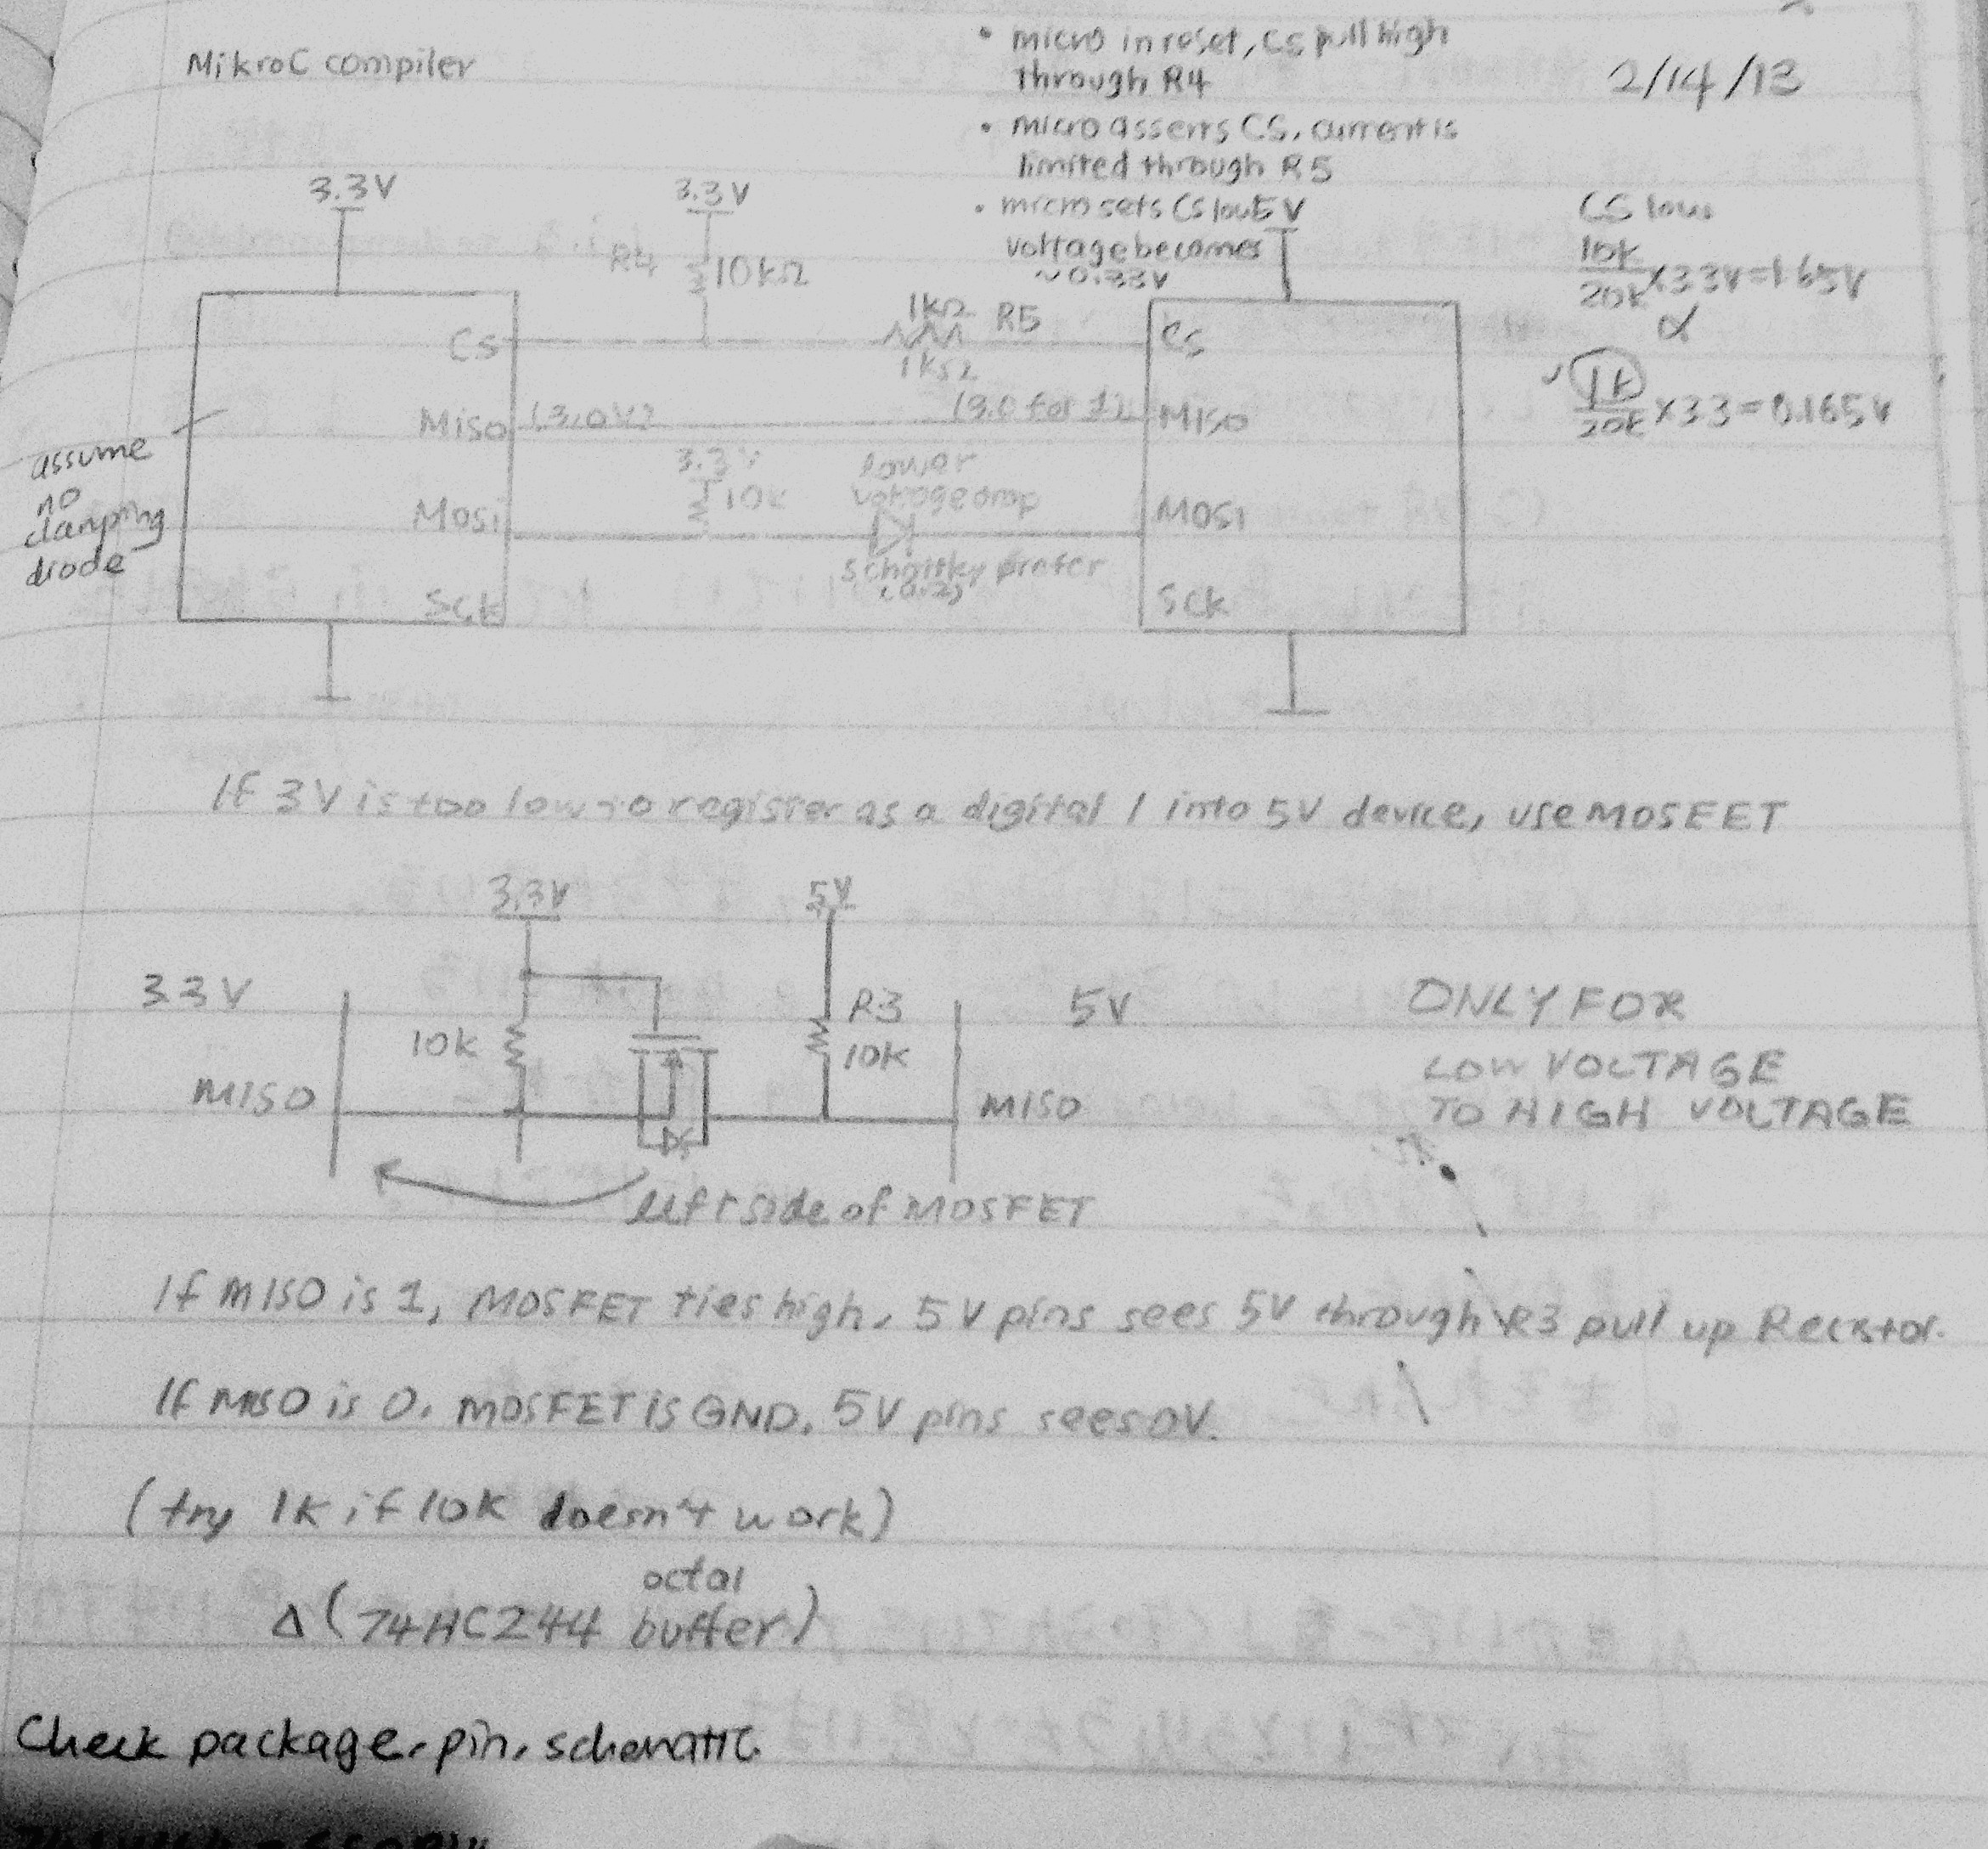 Wan Qi Choos Lab Notebook Diagram Likewise Rs232 Db9 Connector Pinout On 9 Pin Din Cable Thus The Sd Card Reader Lcd And 12 Bit Dac Have To Share Same Mosi 52 As Led Driver Chips As1115 Needed Other I2c Port